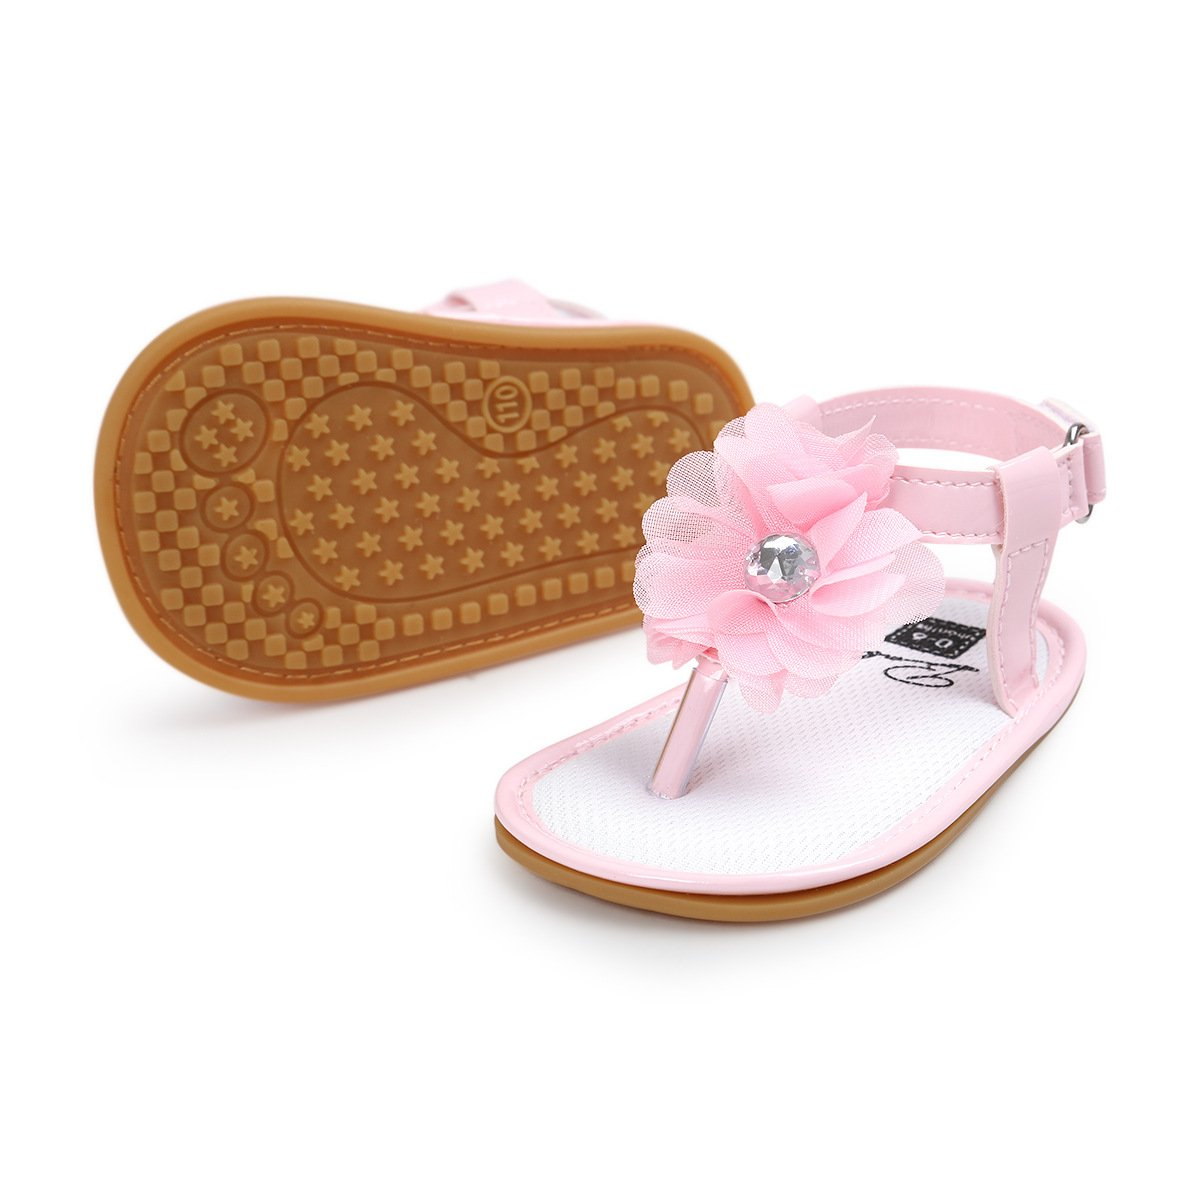 BEBARFER Baby Girls Sandals Toddler Infant Cute Flowers Anti-Skid Rubber Sole First Walkers Summer Shoes